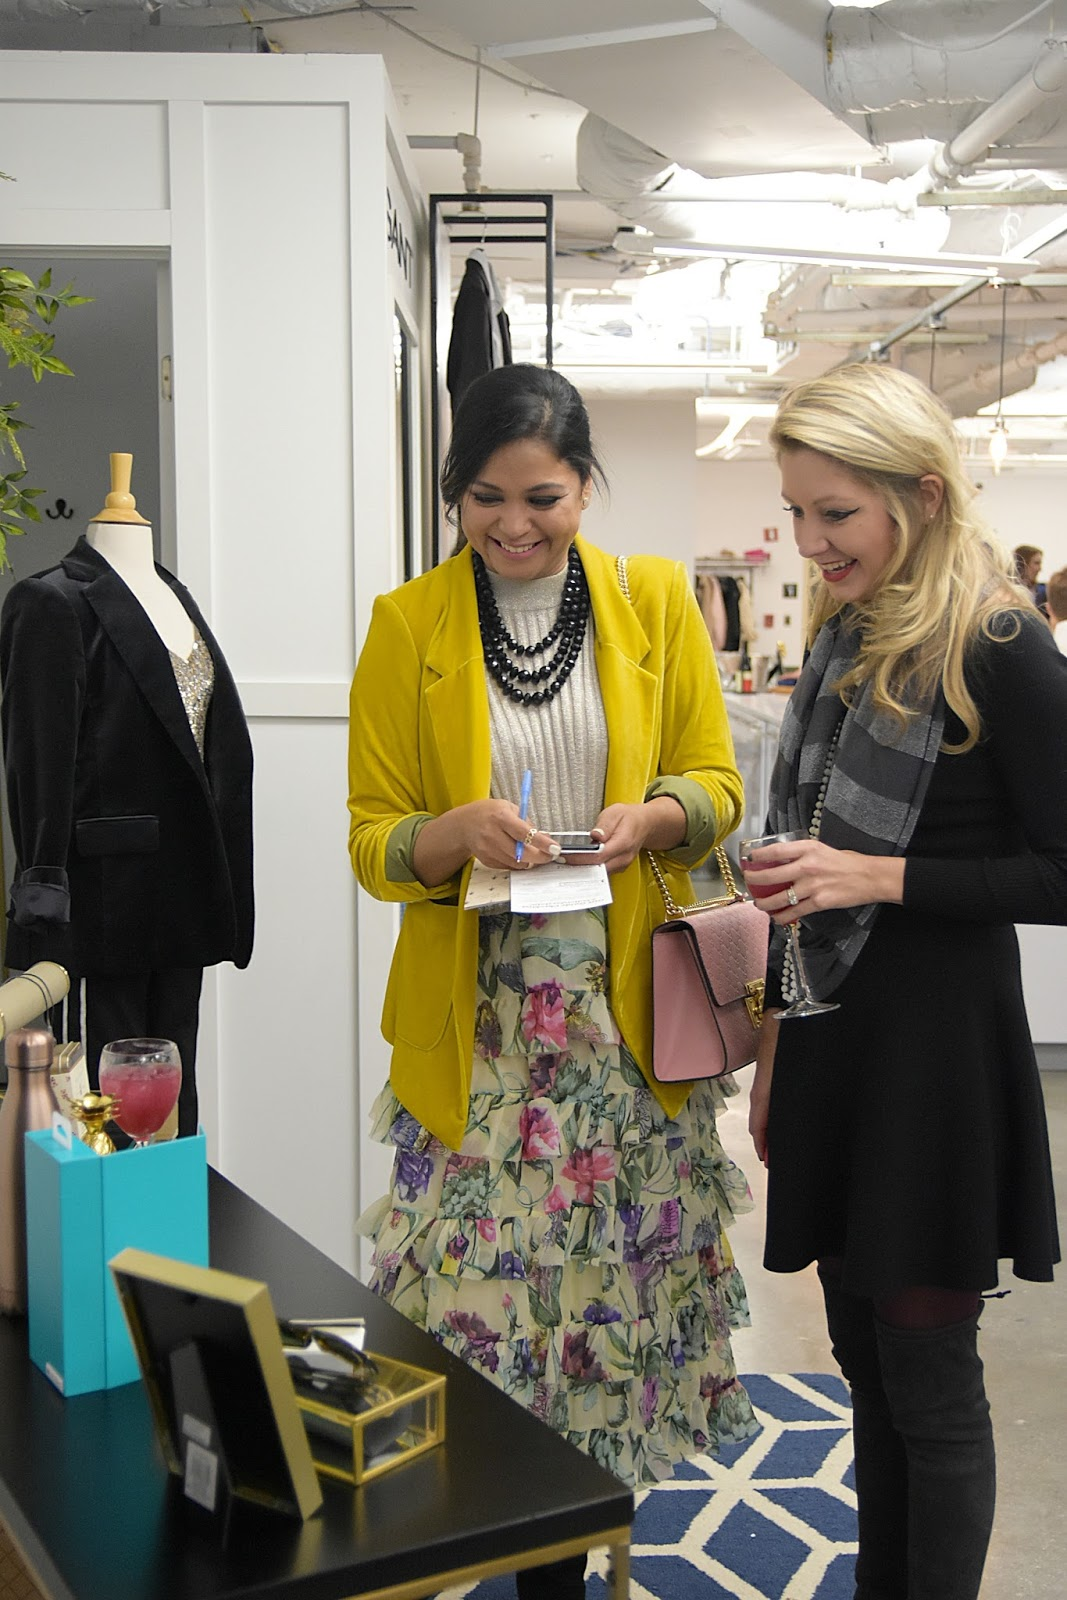 Trunk club event, TCholidaysinDC, holiday shopping, gift guide, blog post, myriad musings , ad